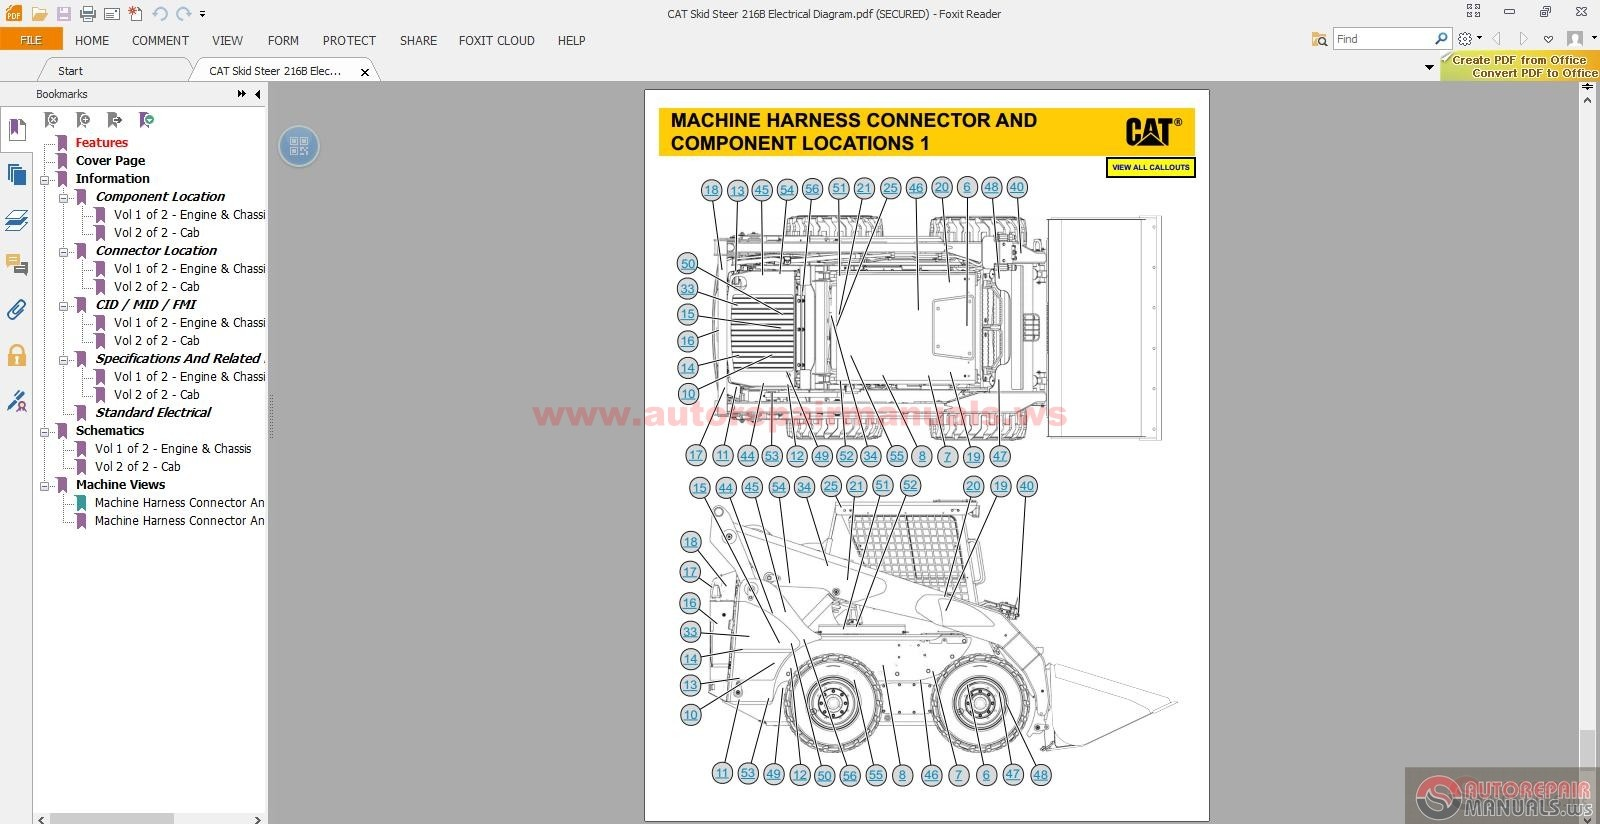 cat skid steer 216b electrical diagram auto repair manual forum